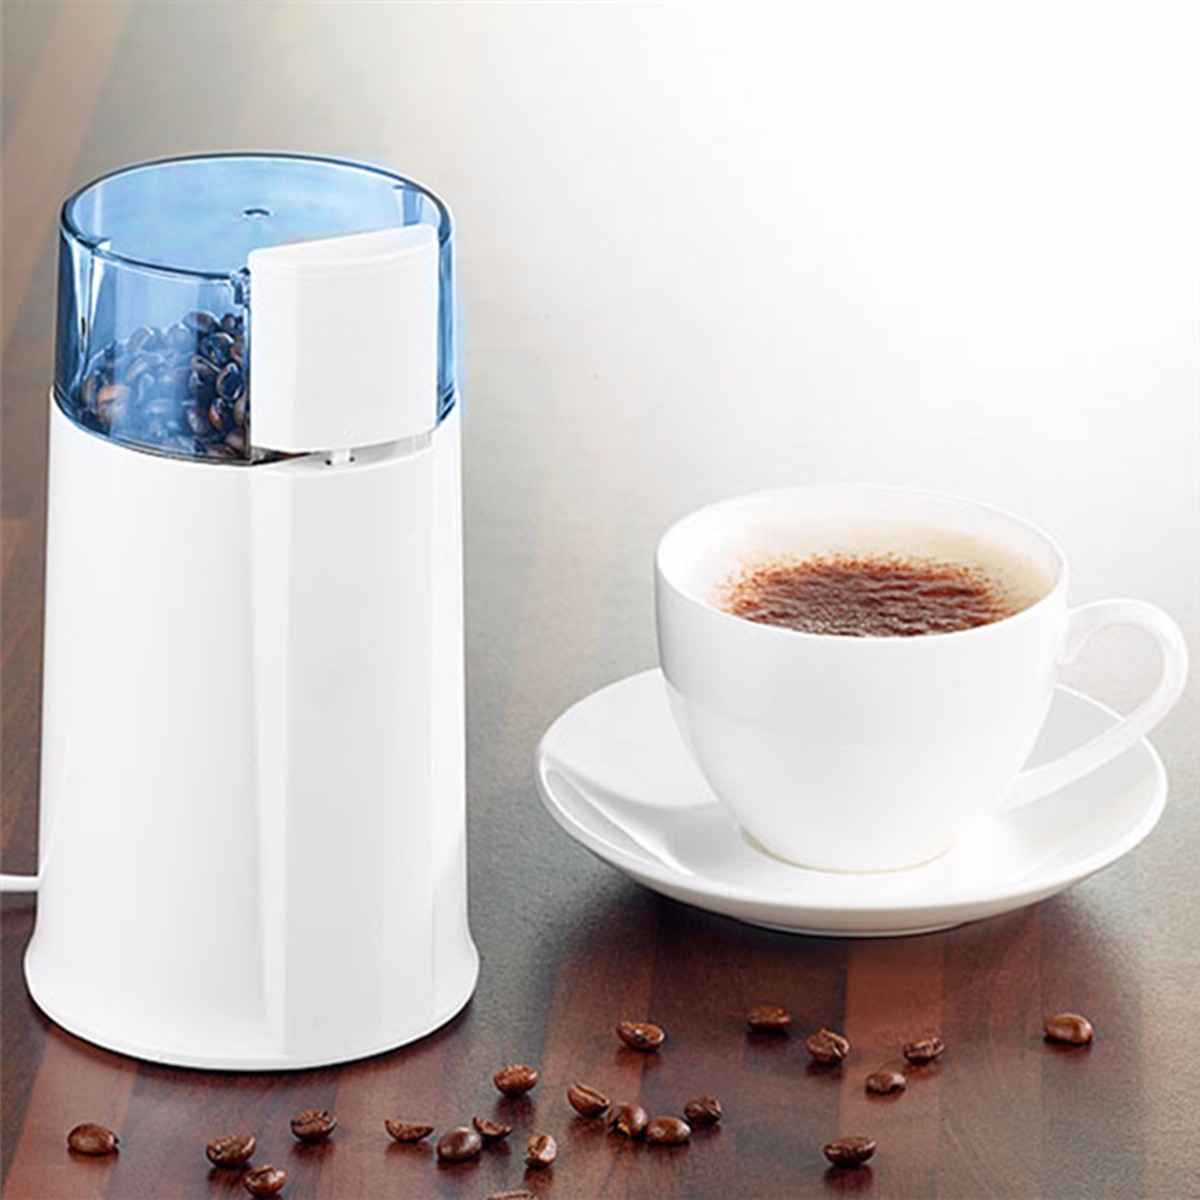 White ABS 220V-240V 100W Electric Coffee Bean Nut Spice Blade Grinder Blenders Coffeeware Pot Coffee Maker EU Plug Home Office